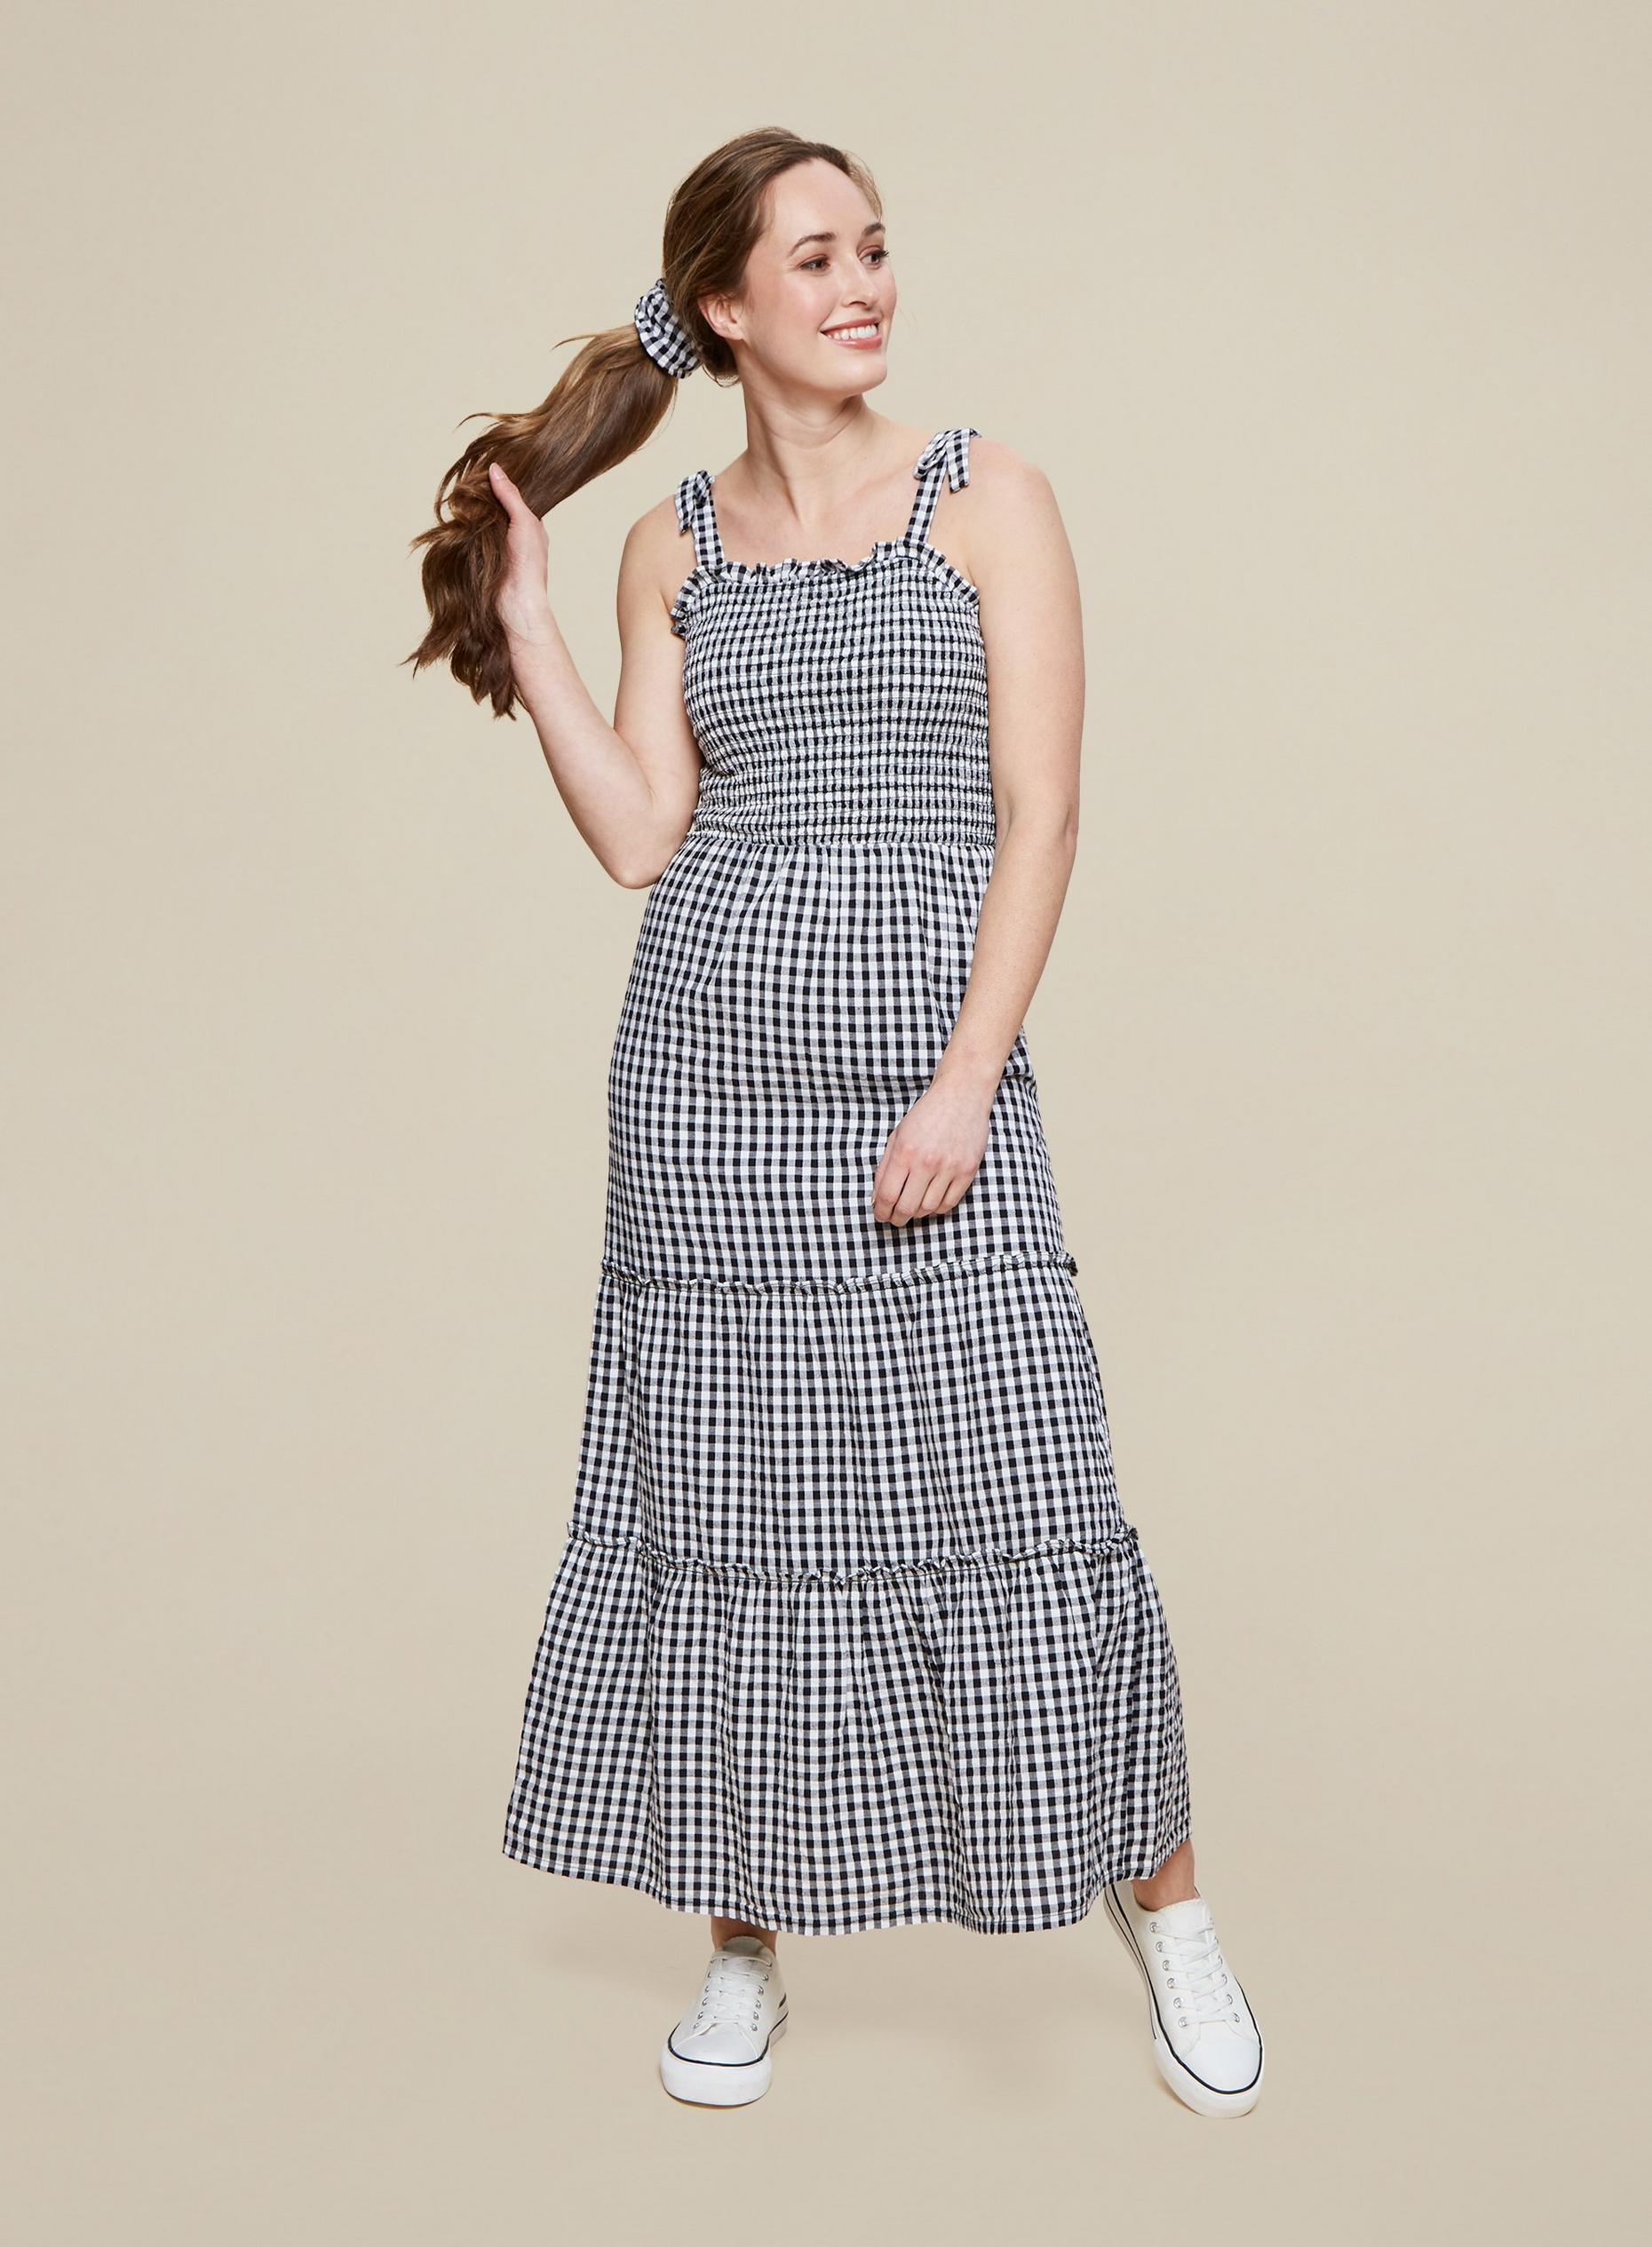 Monochrome Check Print Cami Dress